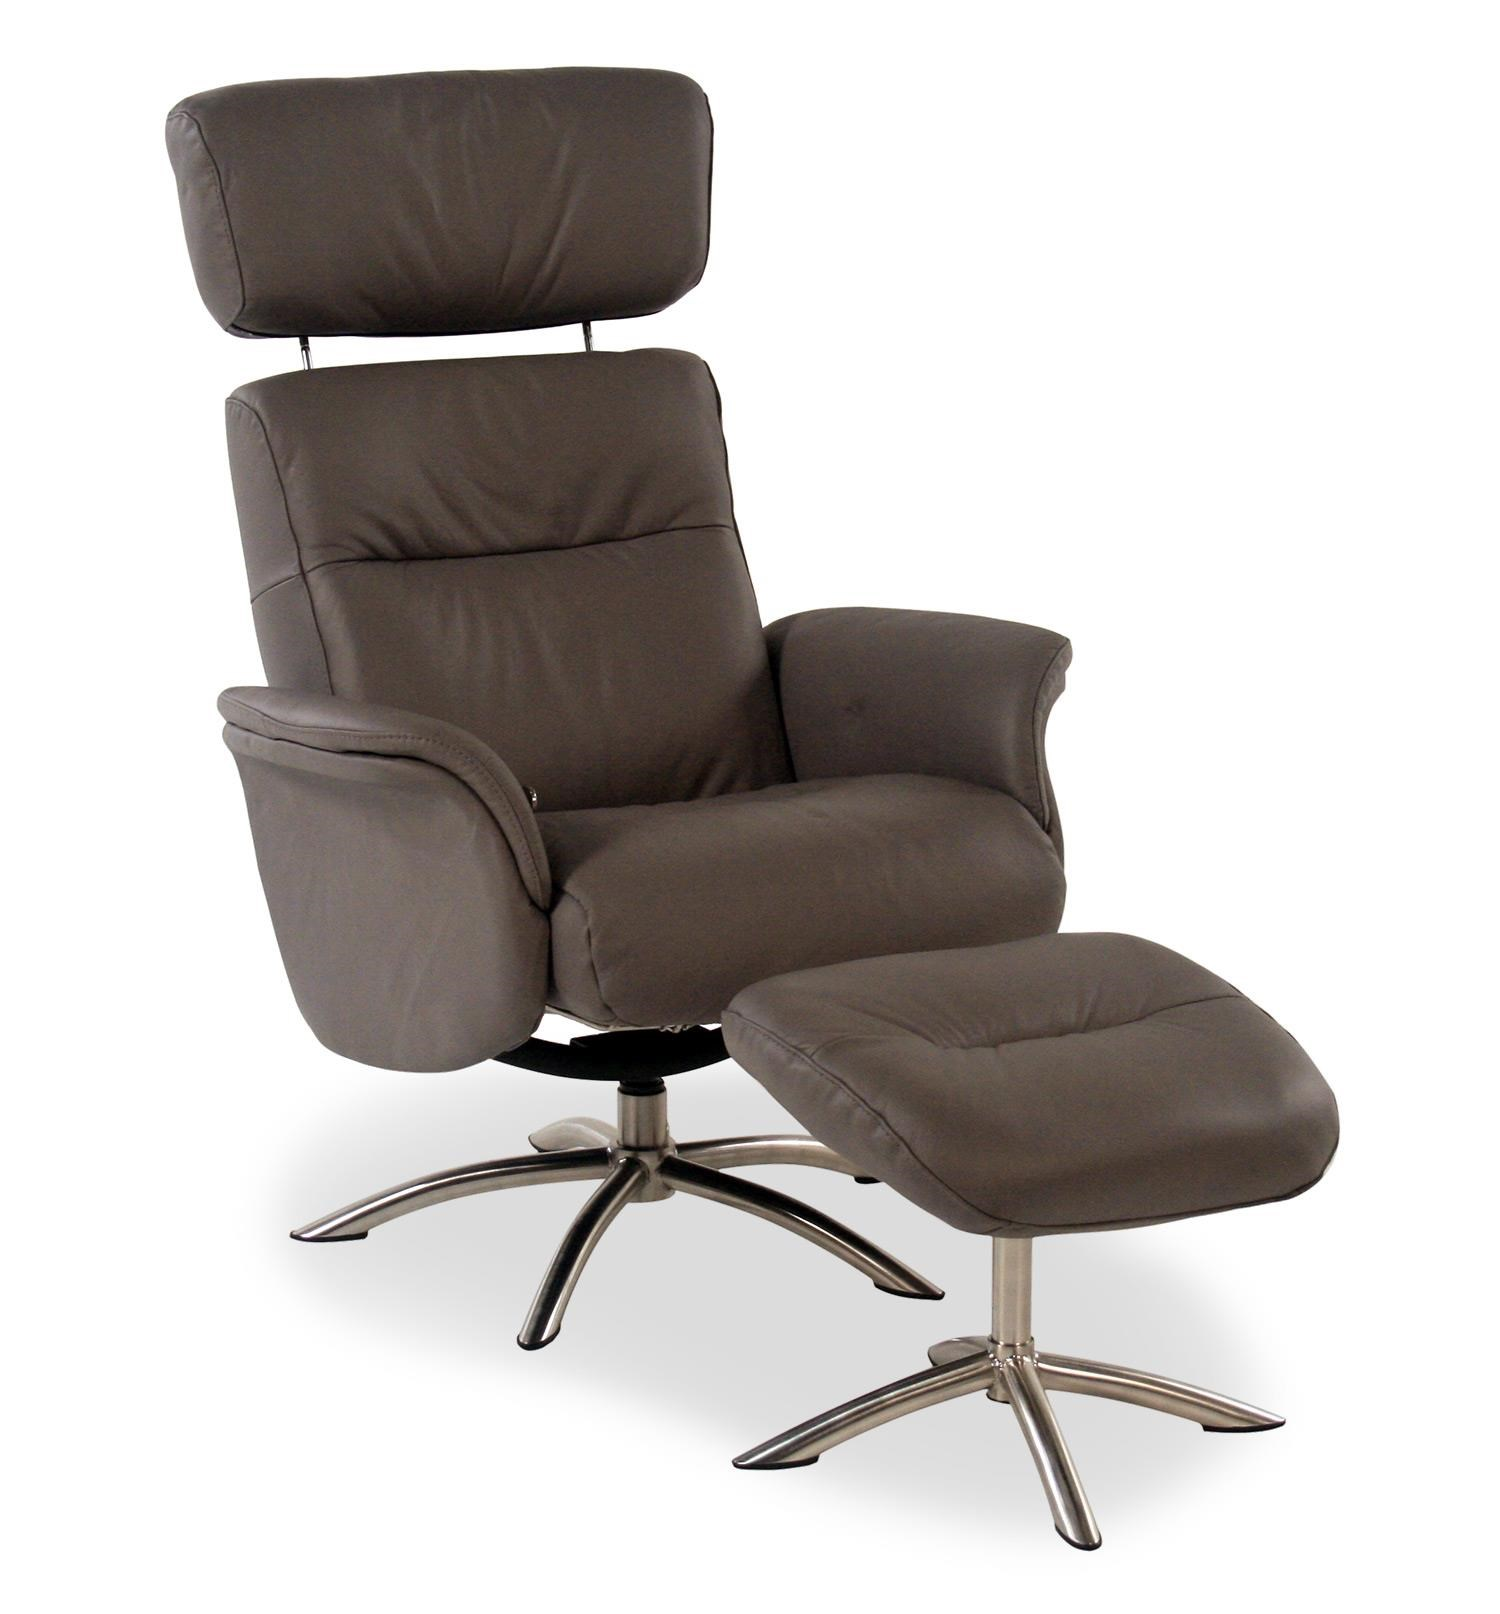 Leather Recliner Chair With Ottoman Quantum Contemporary Leather Reclining Chair W Swivel Base And Ottoman By Palliser At Rotmans